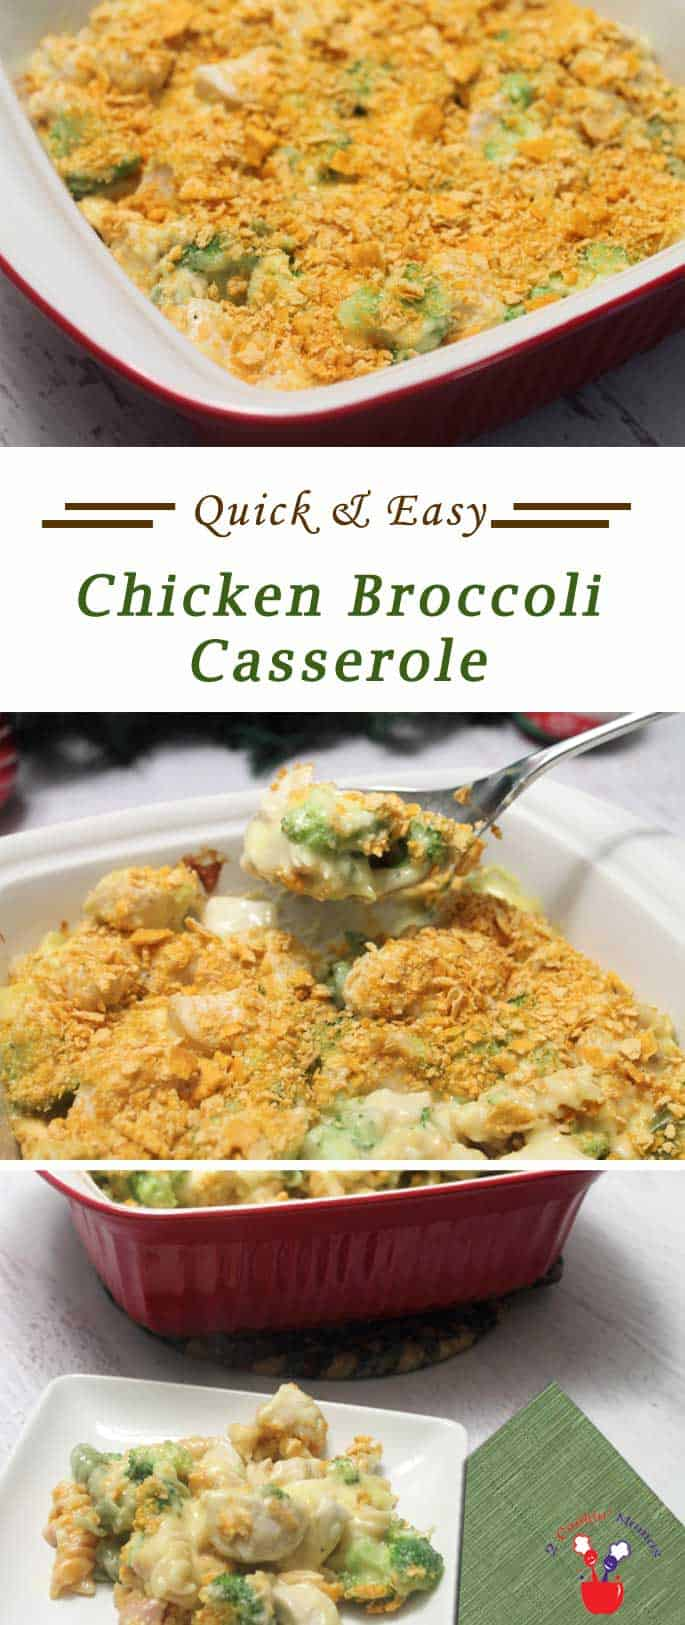 Chicken Broccoli Casserole | 2 Cookin Mamas Creamy and delicious chicken broccoli casserole is easy to make and simple to clean up. It's a nutritious all-in-one dish for those nights when you just don't have the time to cook. #recipe